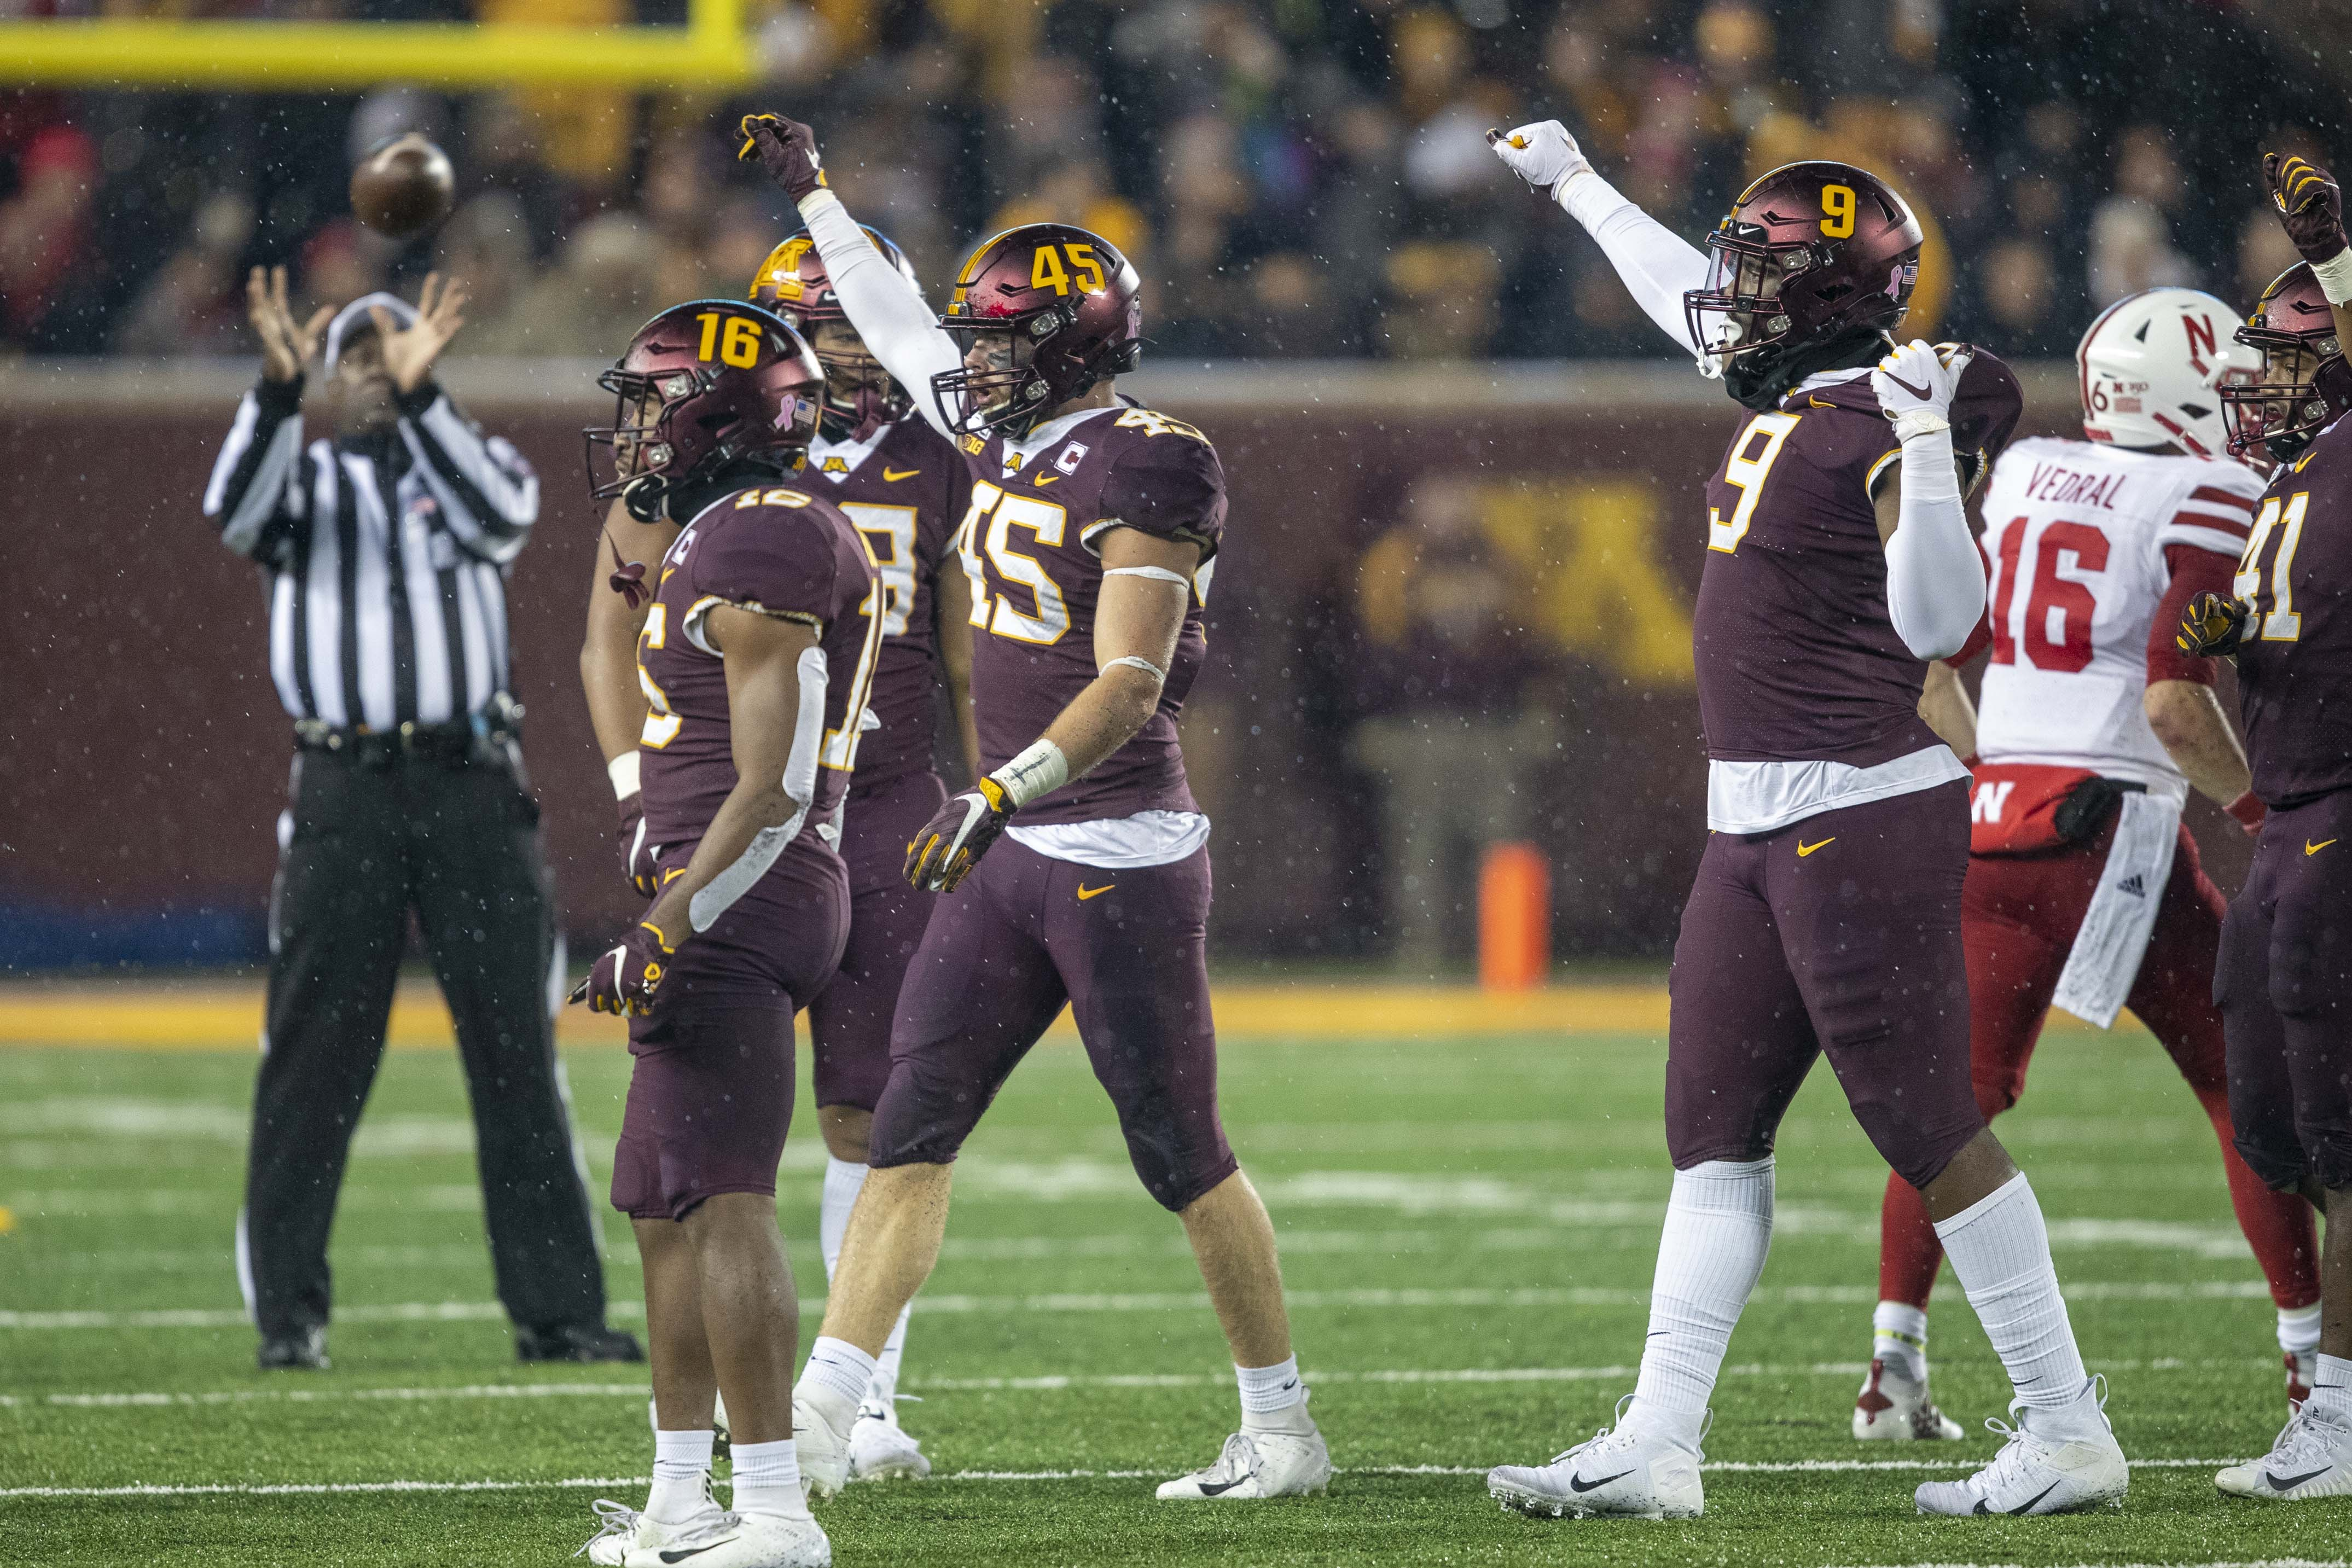 Oct 12, 2019; Minneapolis, MN, USA; Minnesota Golden Gophers linebacker Mariano Sori-Marin (55) defensive lineman Esezi Otomewo (9) holds up their fists after making a a tackle on third down in the first half against the Nebraska Cornhuskers at TCF Bank Stadium. Mandatory Credit: Jesse Johnson-USA TODAY Sports